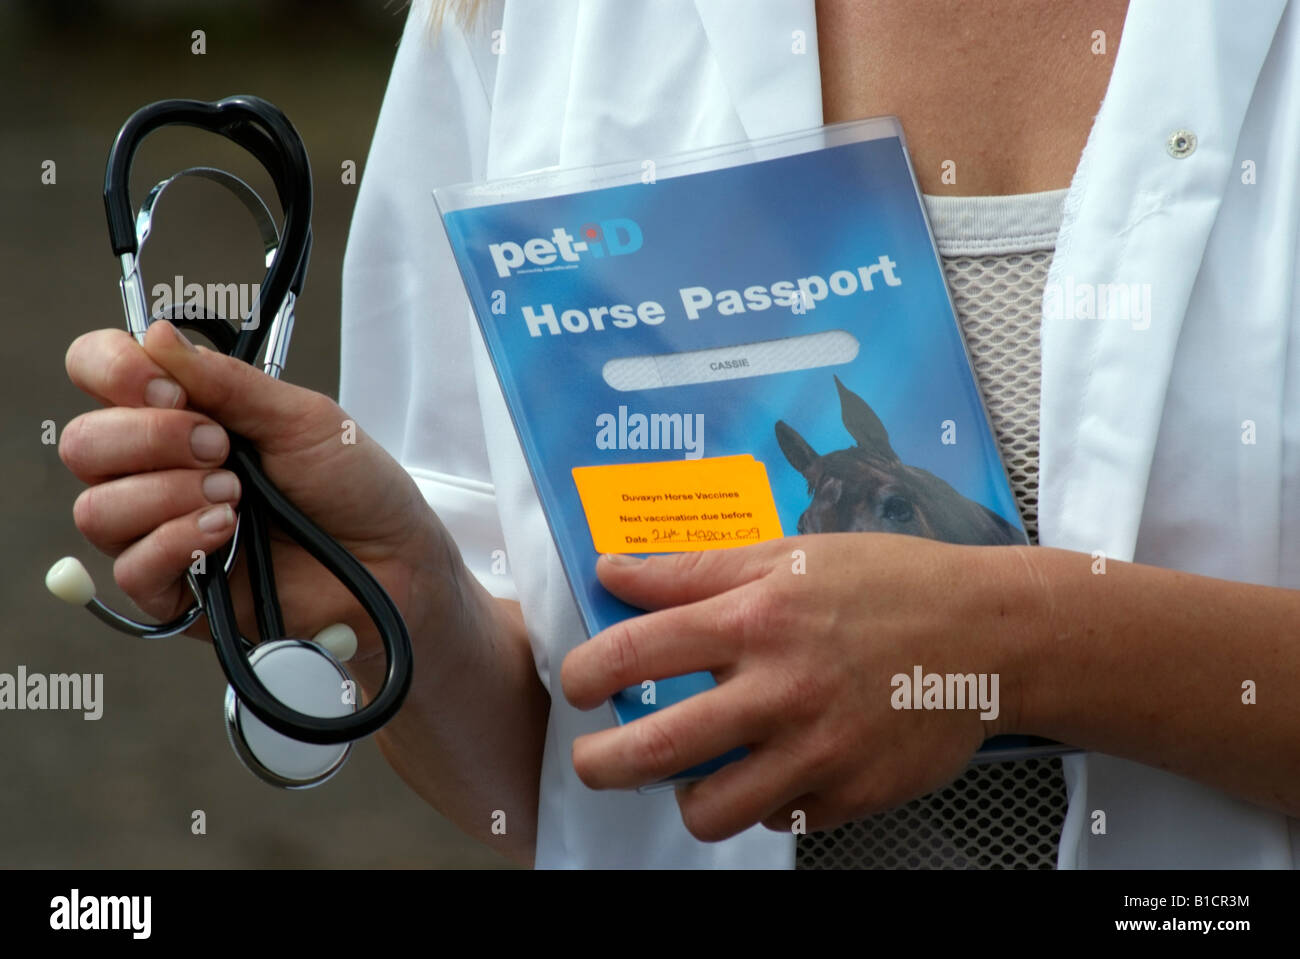 Veterinary officer holding a stethoscope and Pet ID Horse Passport - Stock Image